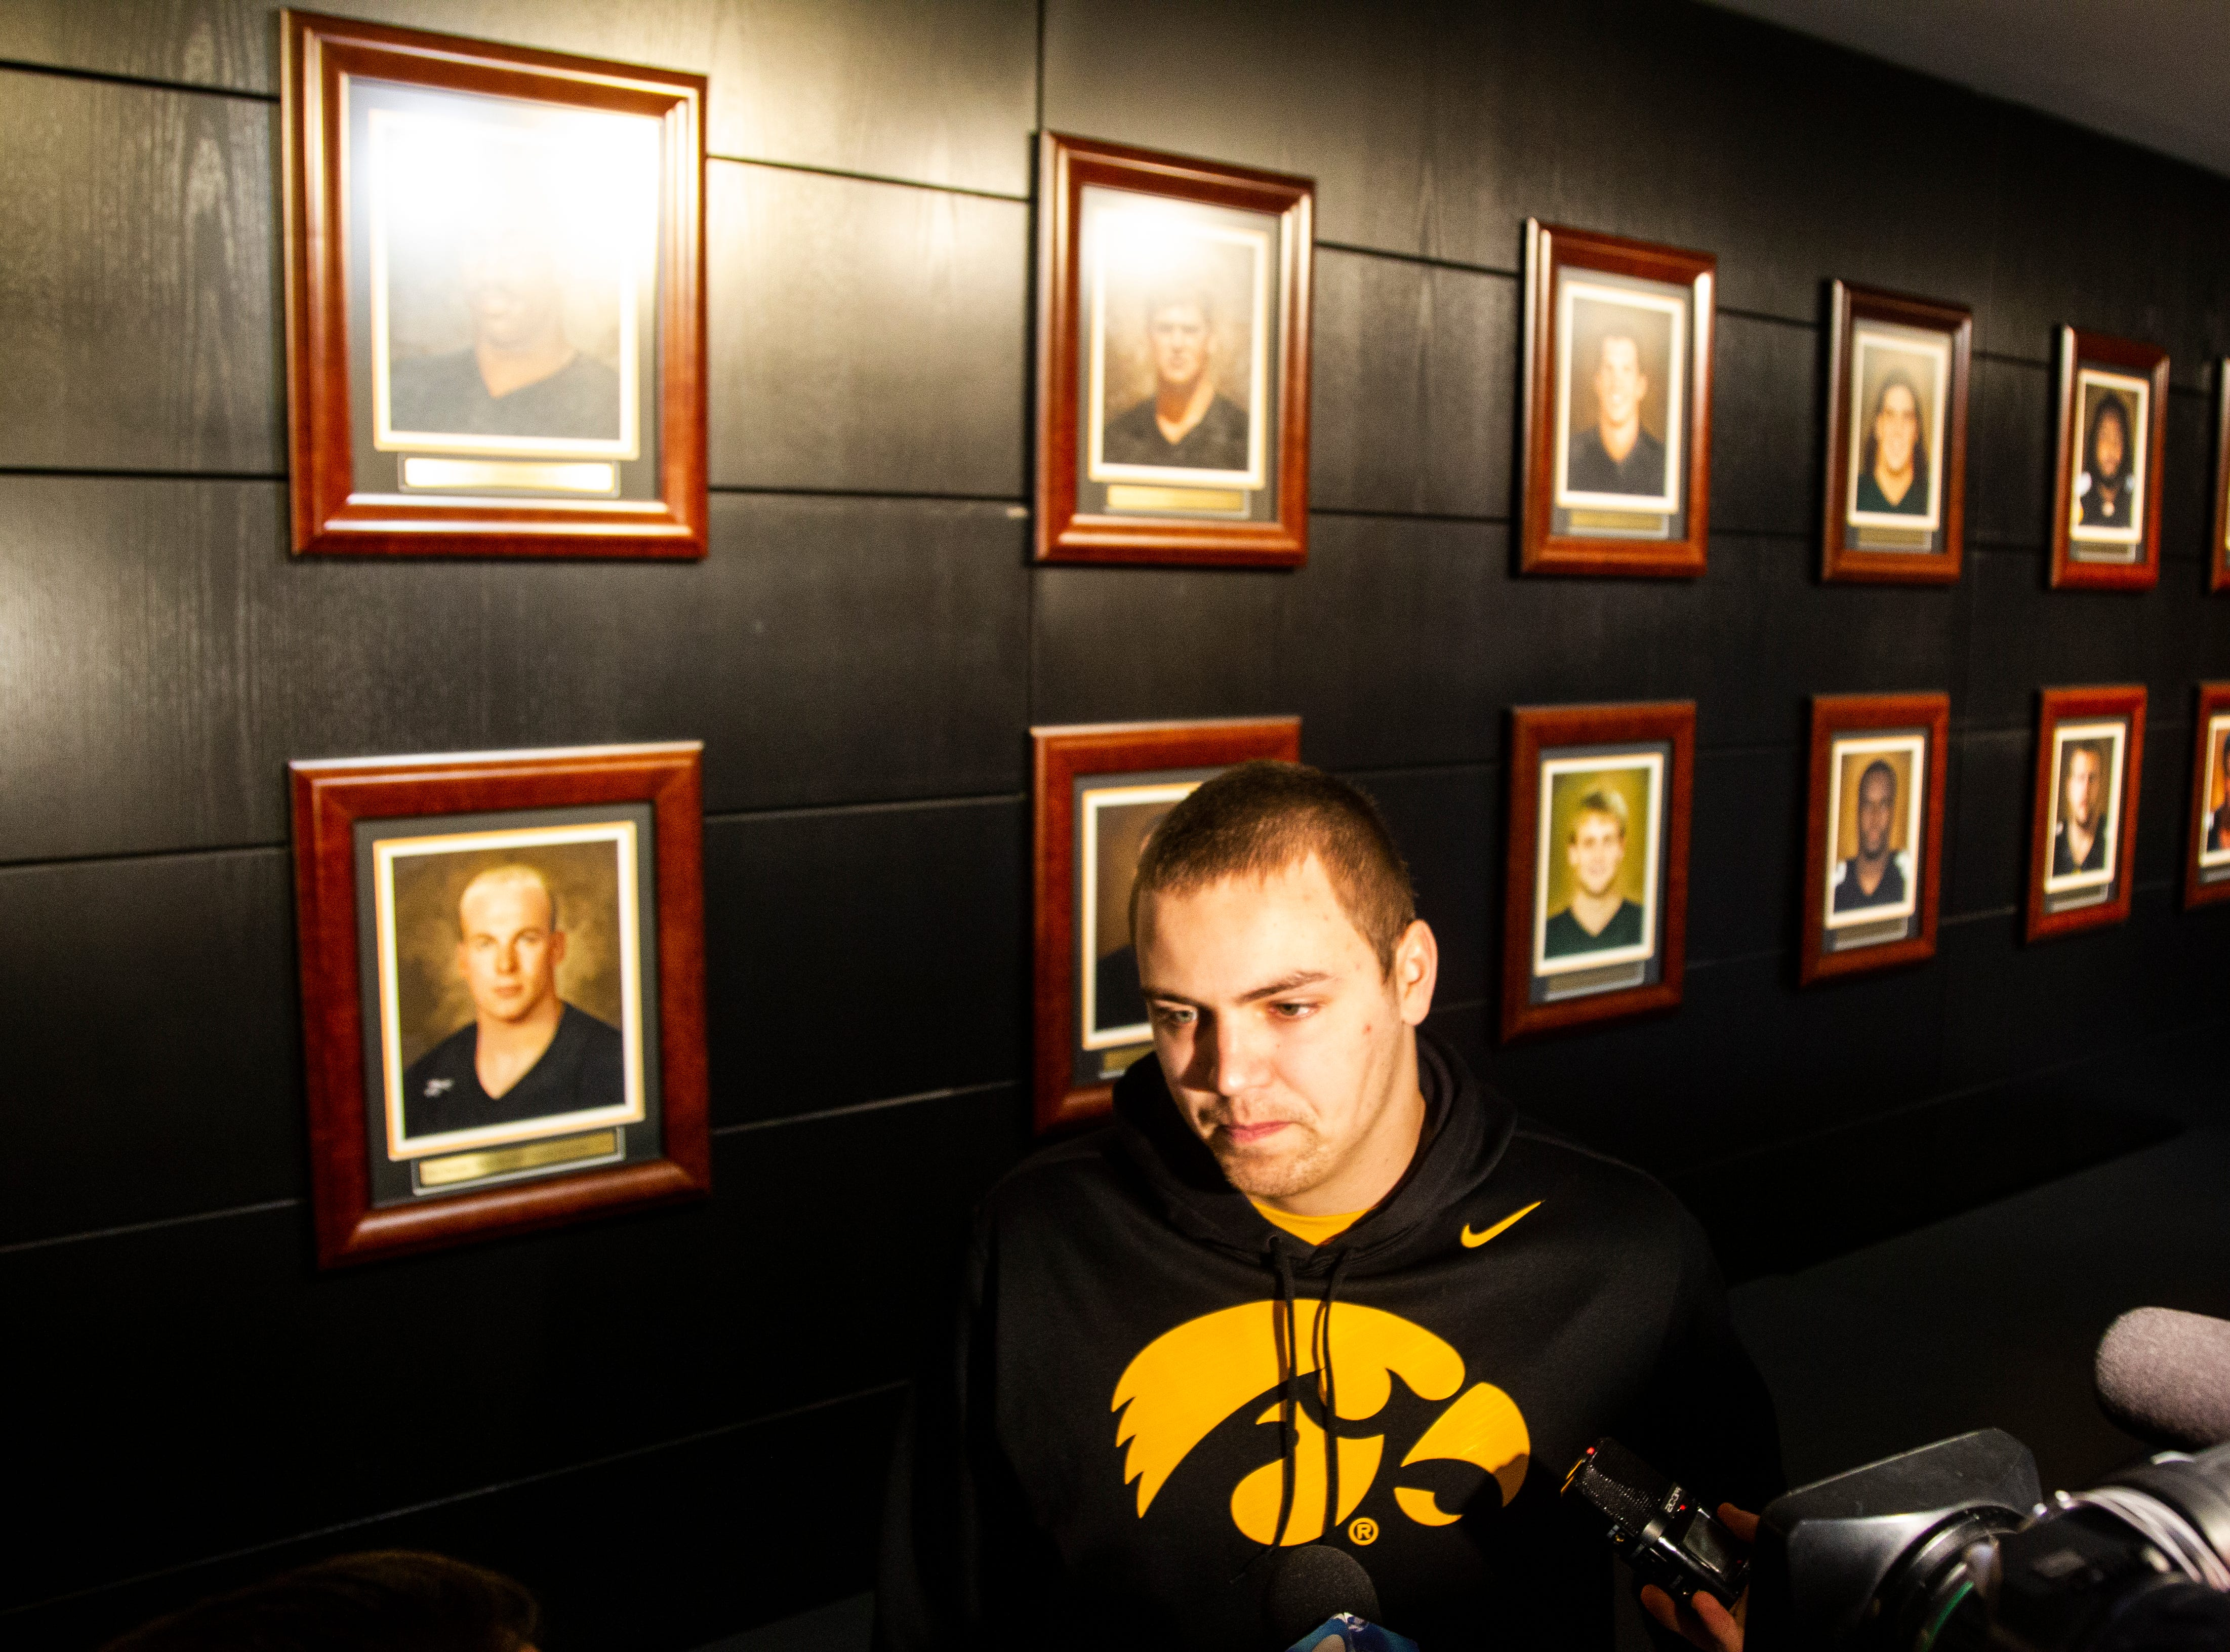 Iowa quarterback Nate Stanley (4) talks with reporters in front of portraits of Iowa Consensus All Americans during an Outback Bowl announcement press conference on Sunday, Dec. 2, 2018, at the Hansen Football Performance Center in Iowa City.